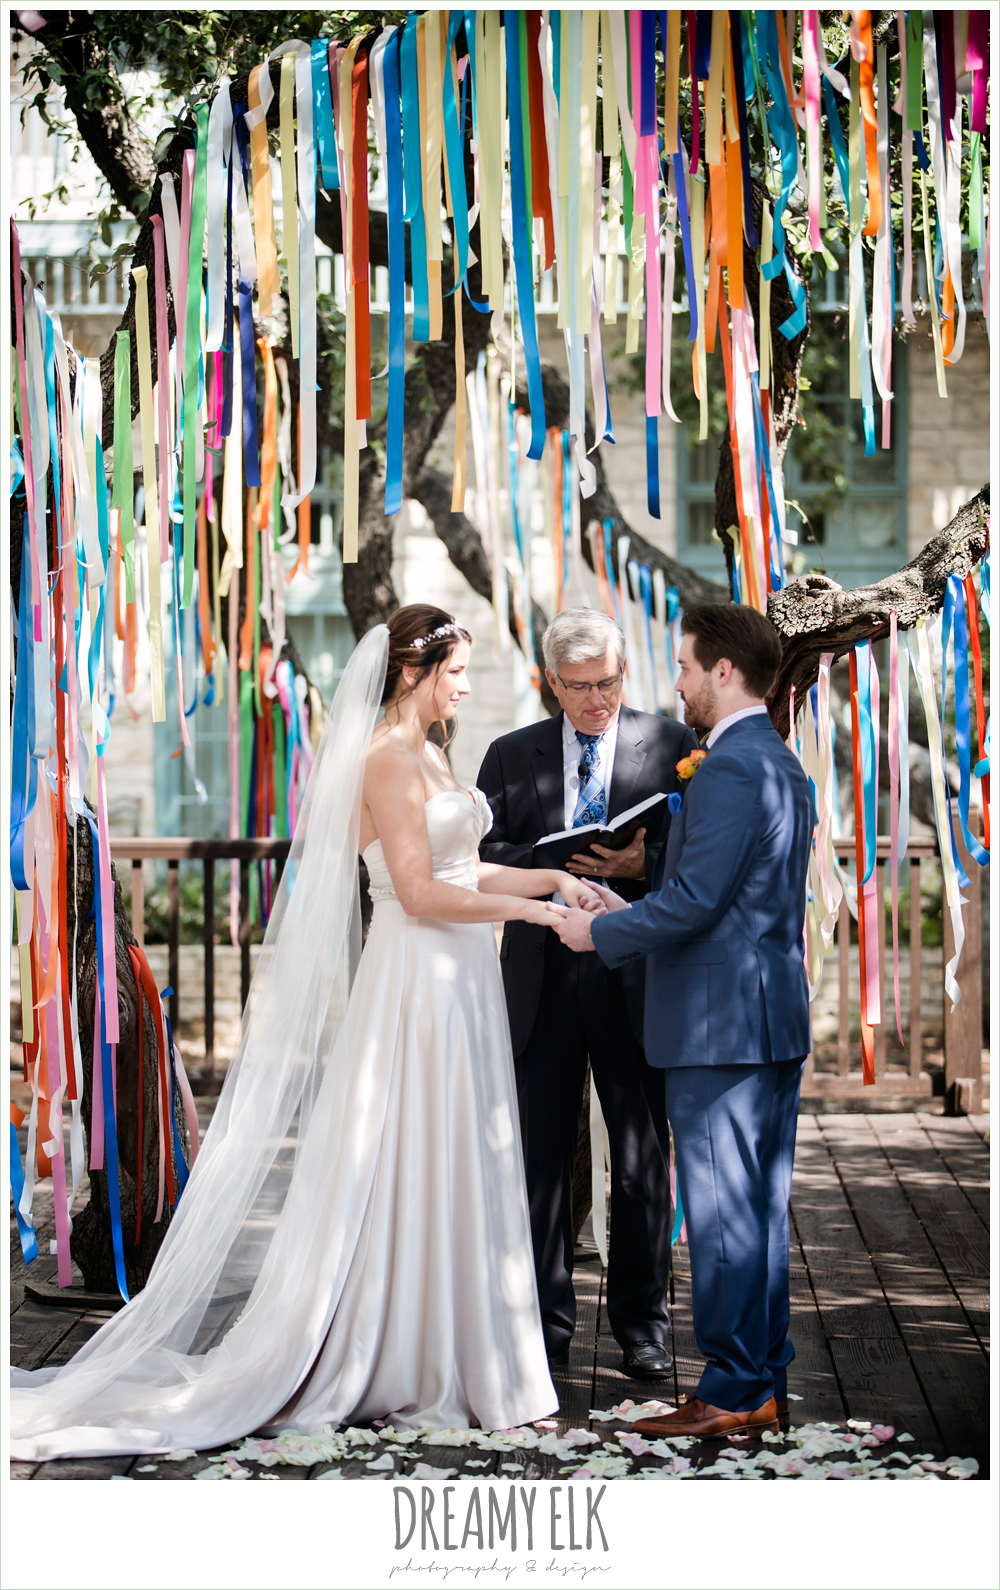 Colorful Streamers In Trees Ceremony Decorations, Groom In Menu0027s Wearhouse  Navy Suit Pink Shirt And